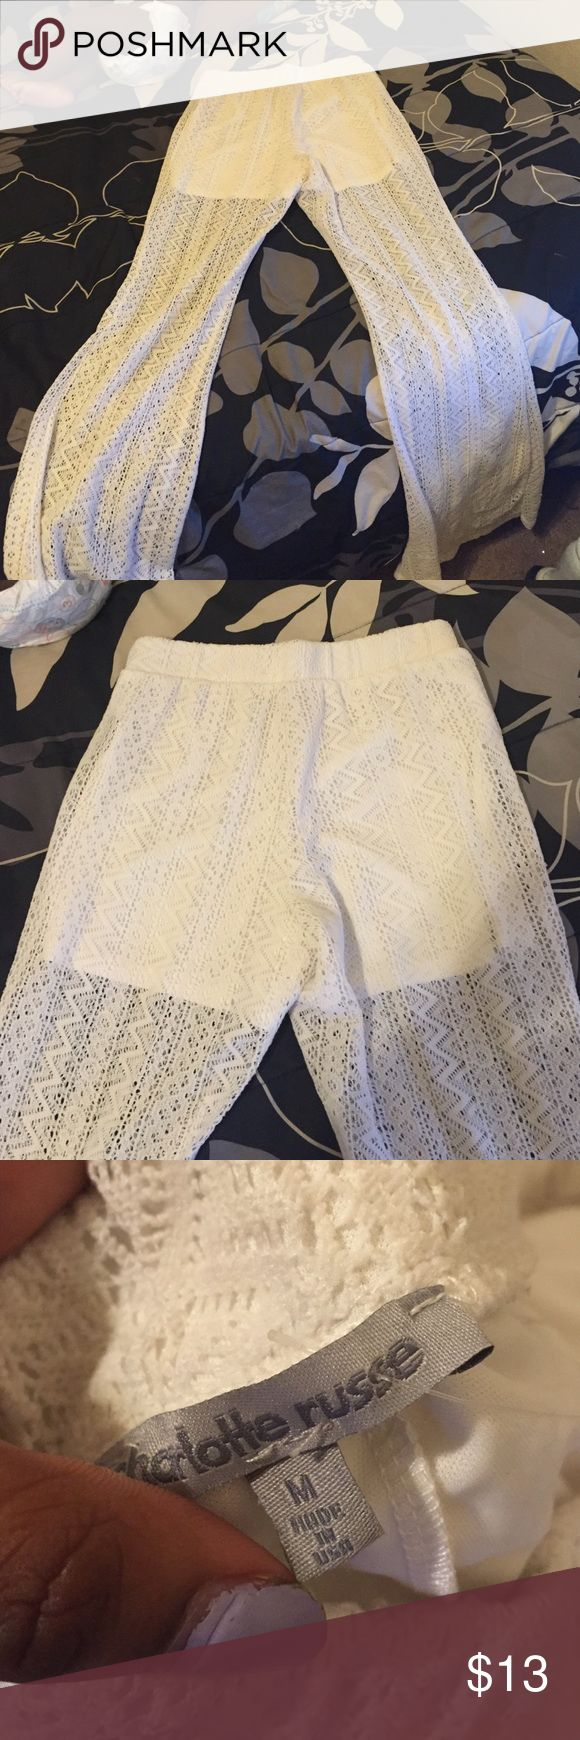 Beach pants All white beach pants, never worn, they make your butt look really big girl.😏😛 Charlotte Russe Pants